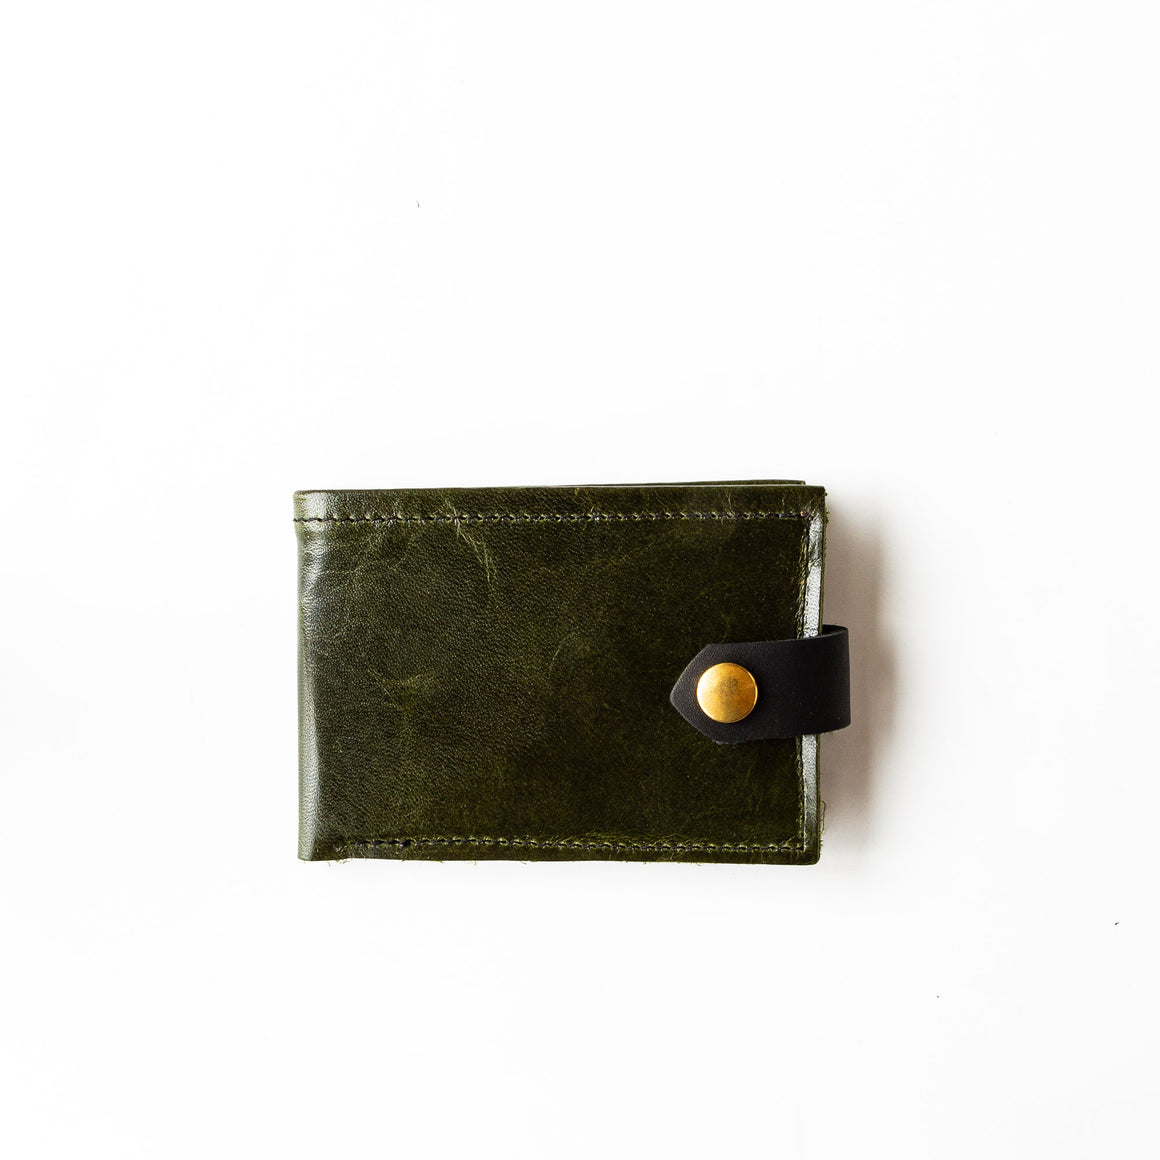 Lookbook - St-Joseph - Classic Unisex Wallet / Card Holder - Sold by Chic & Basta